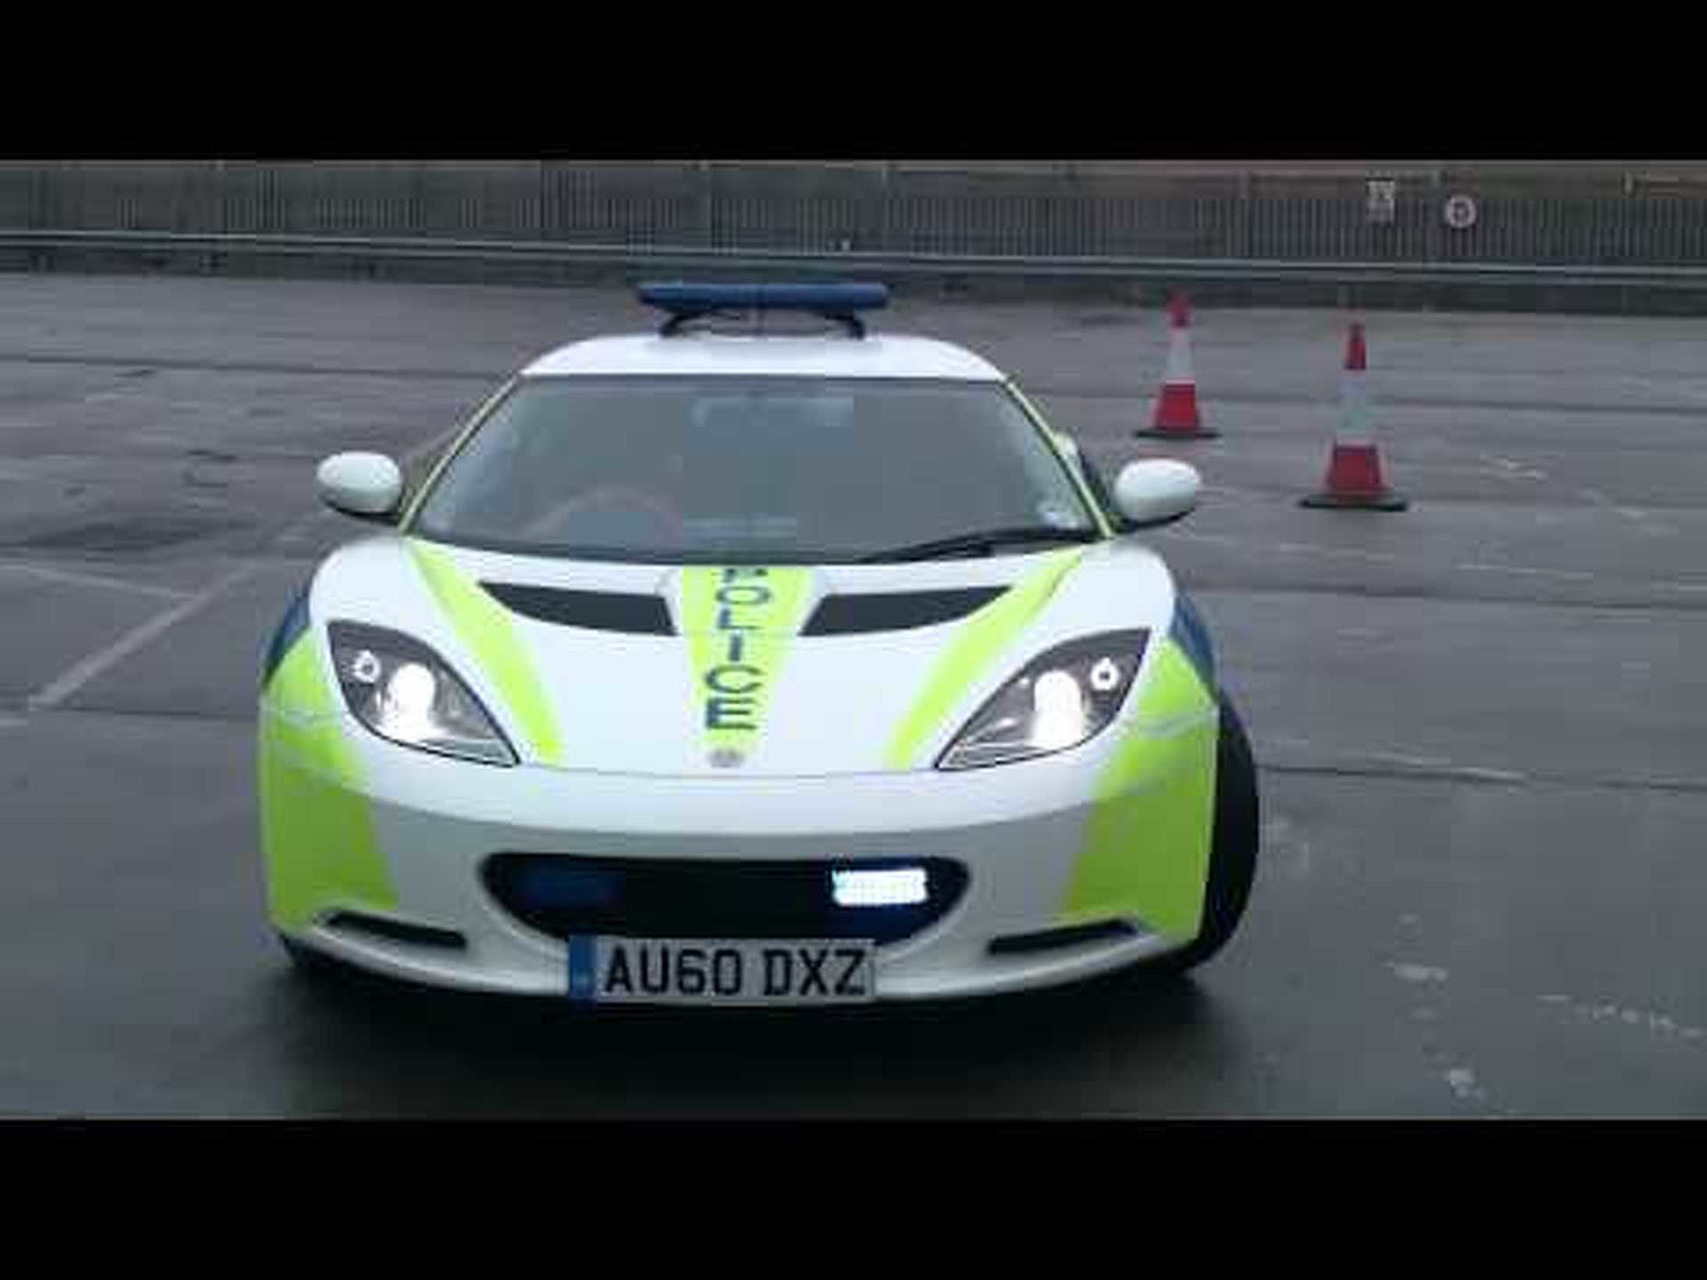 Police Lotus Evora - Central Motorway Police Group